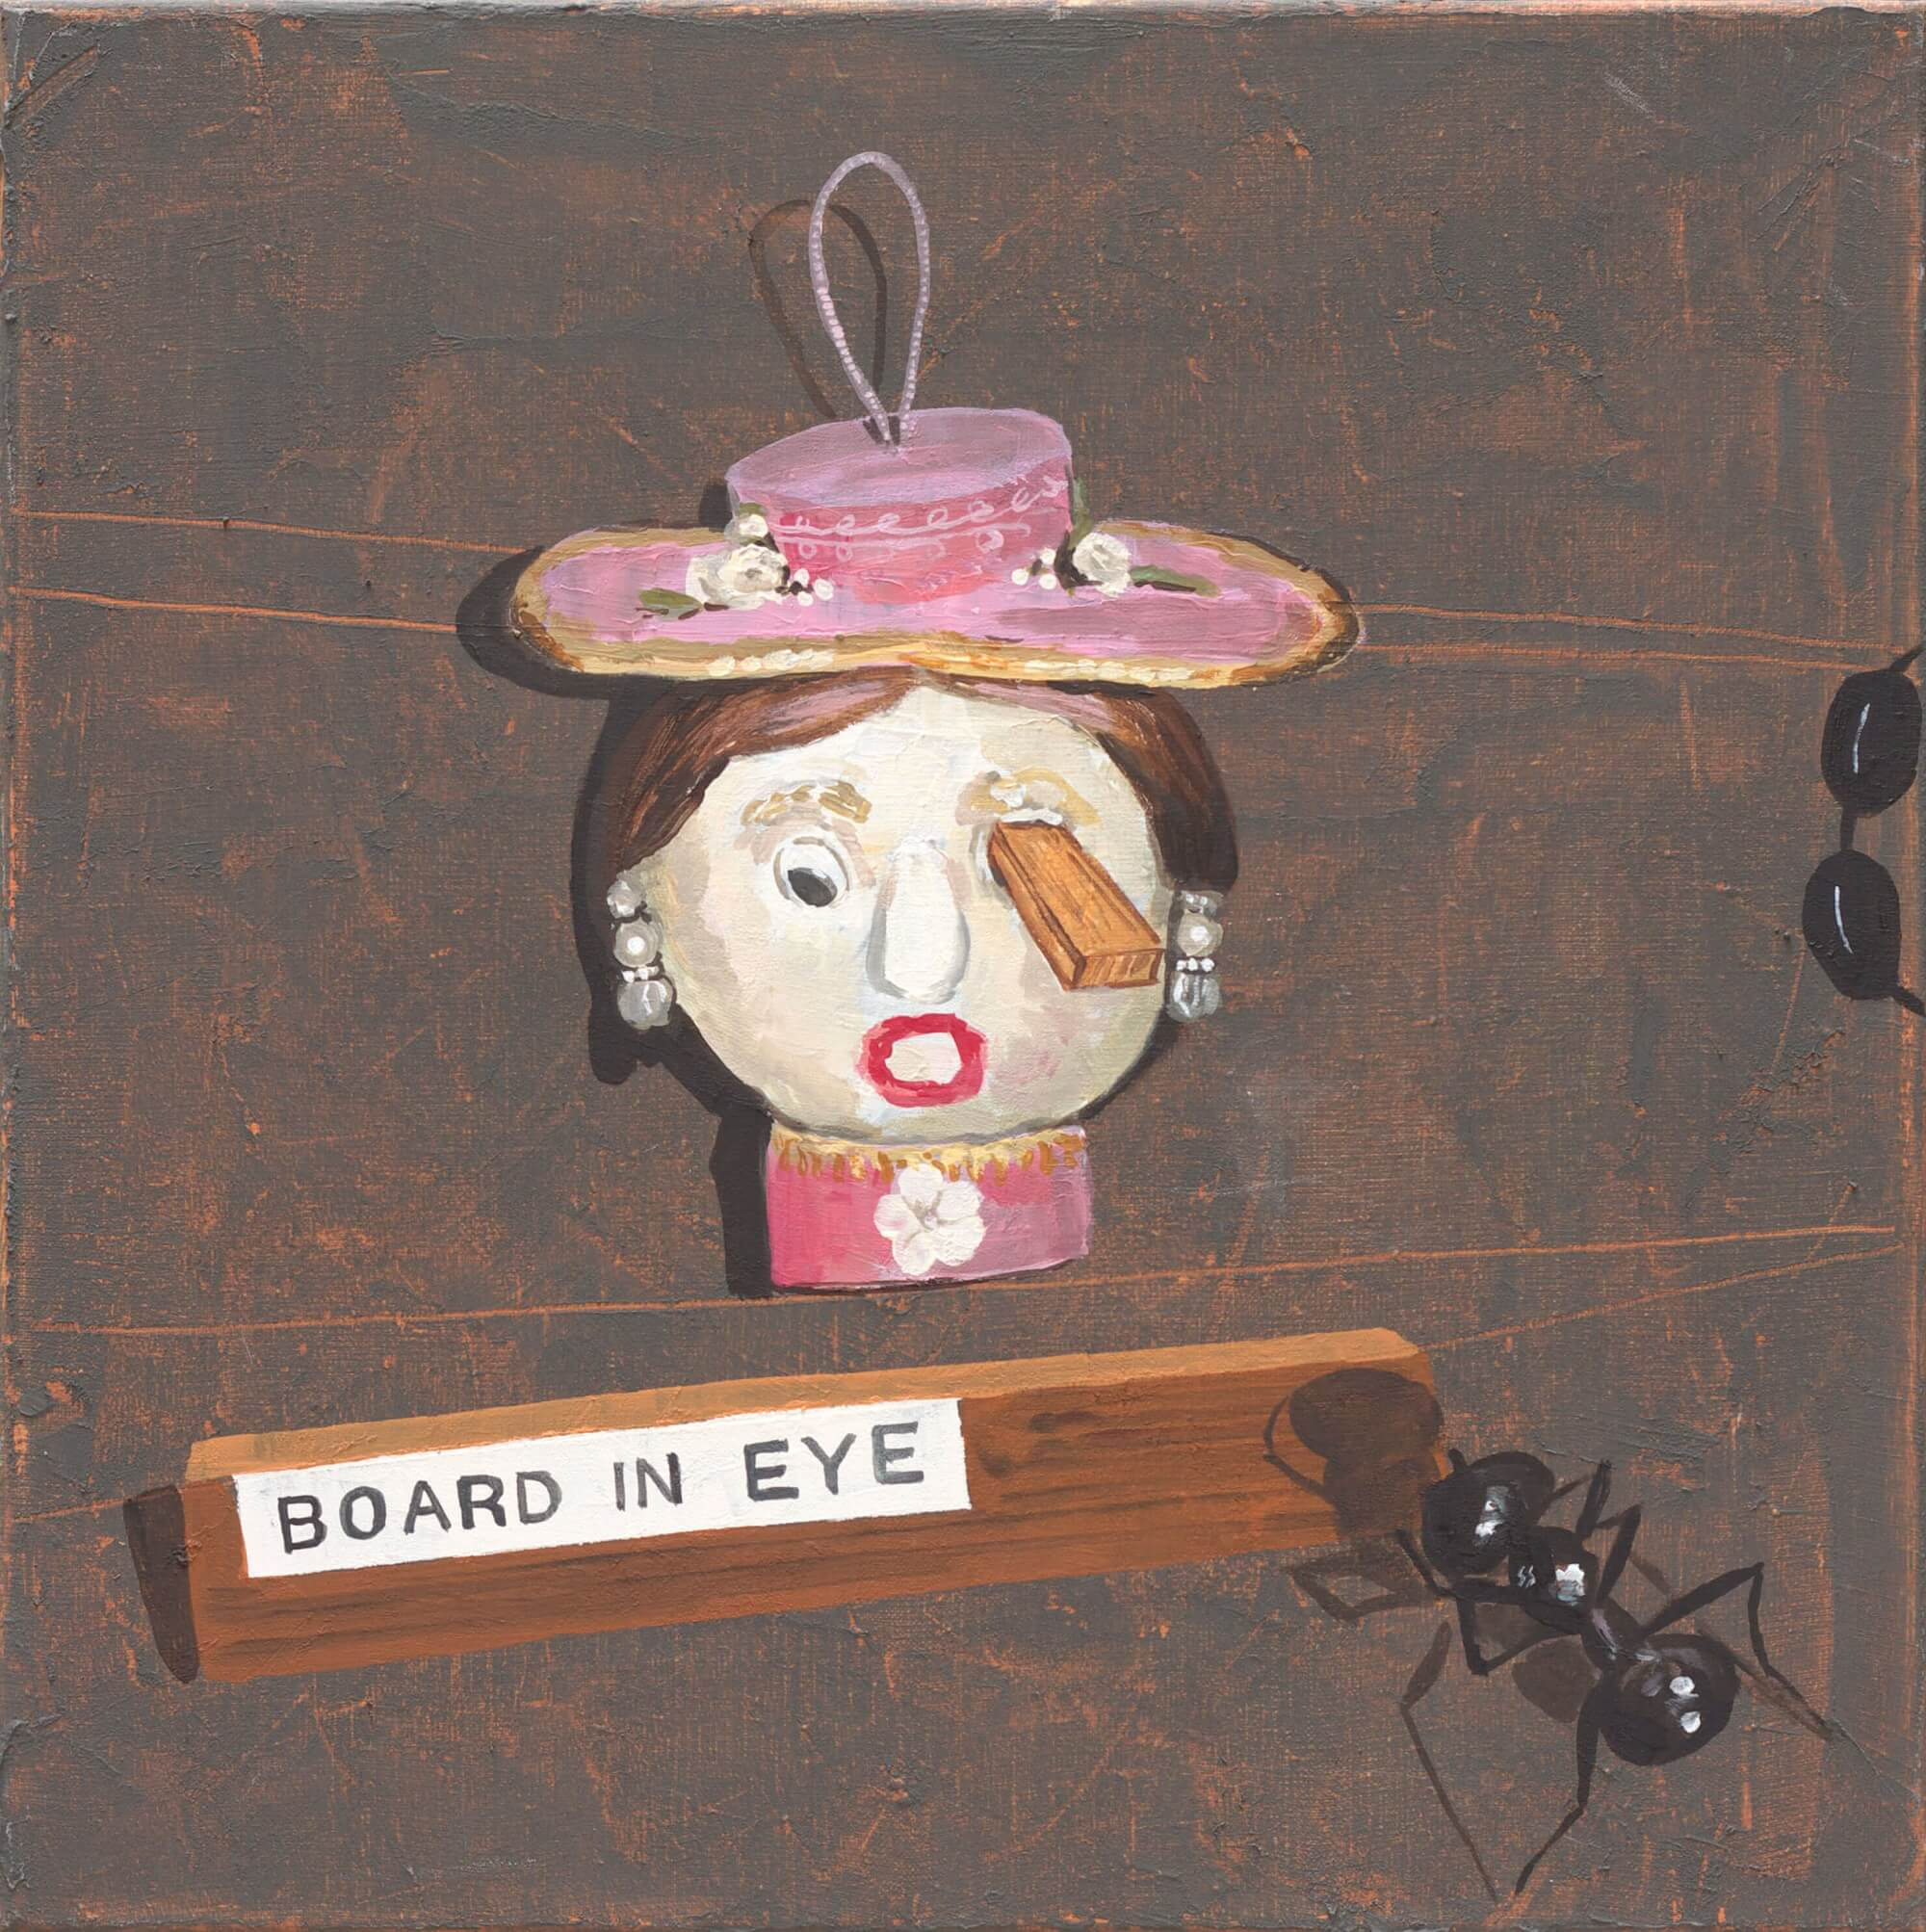 Curro González, Board in eye, 2012